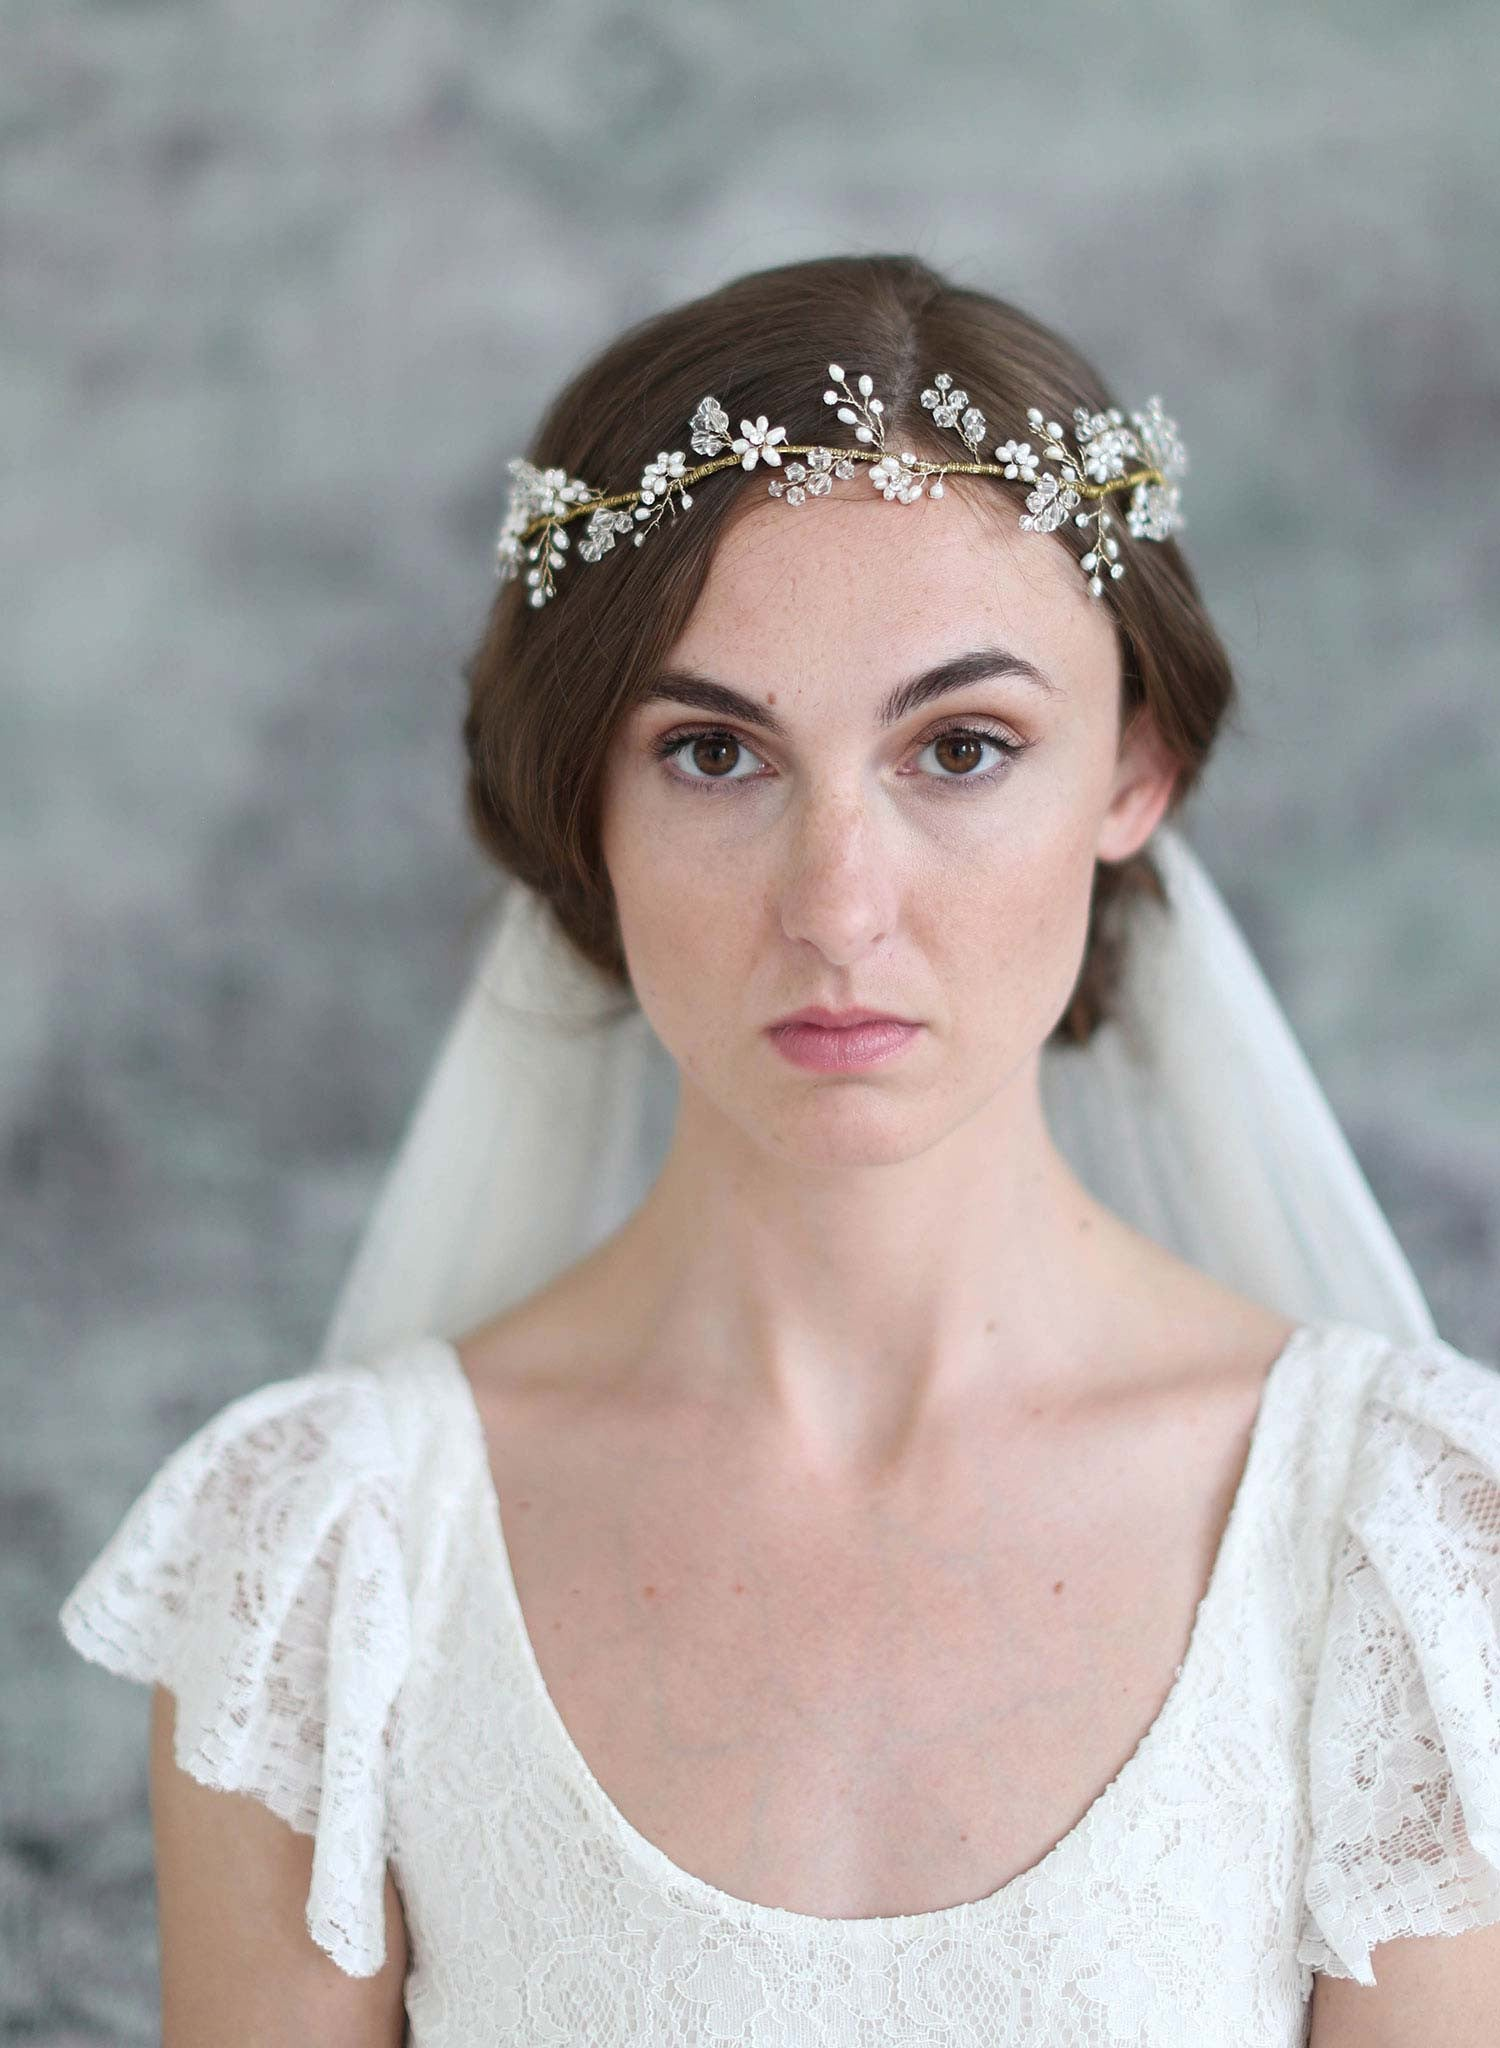 Crystal and blossom full crown lux train veil - Style #708